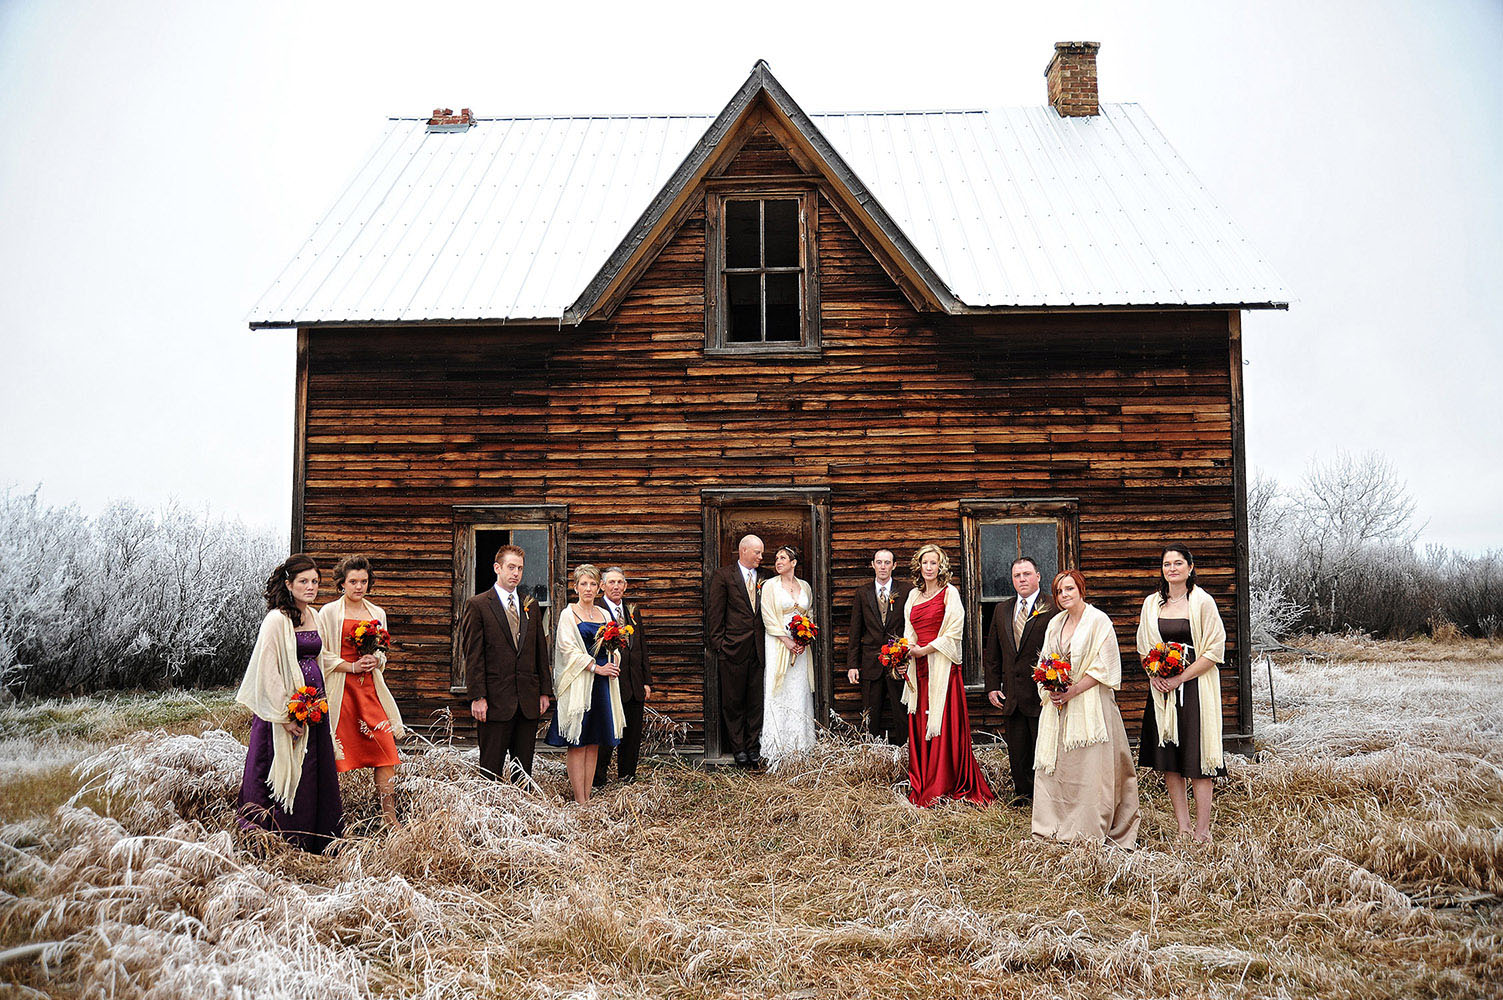 Wedding party in front of old cabin